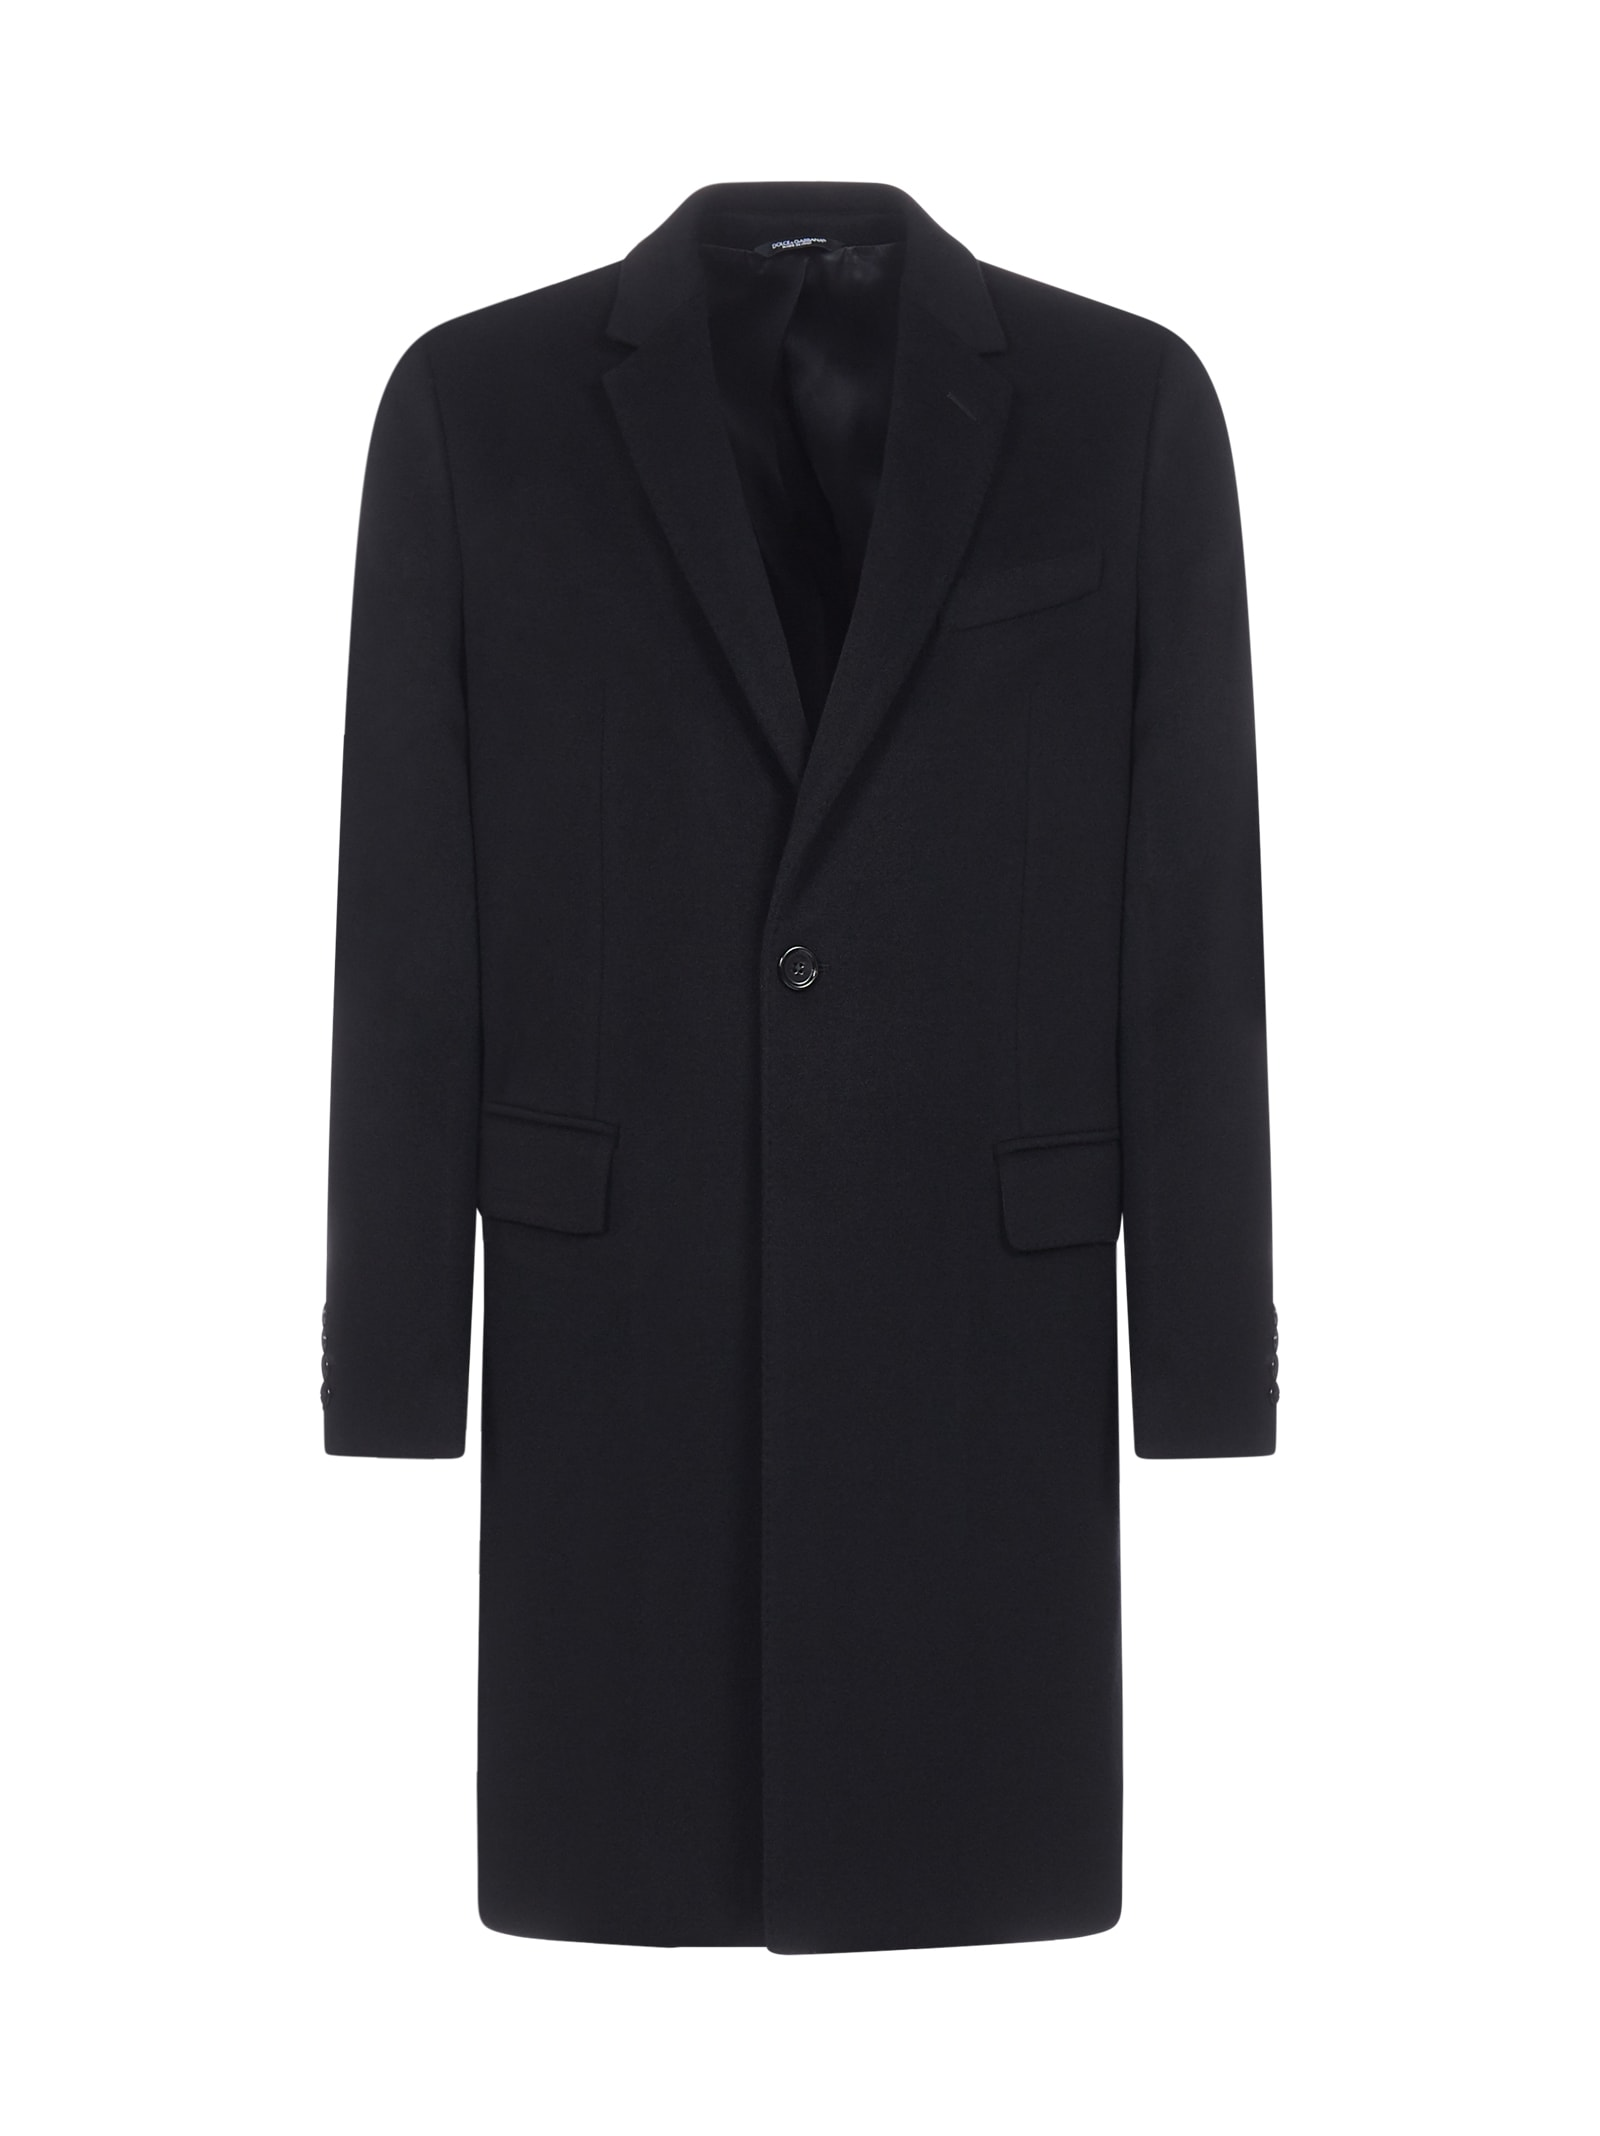 Dolce & Gabbana Wool And Cashmere Tailored Coat